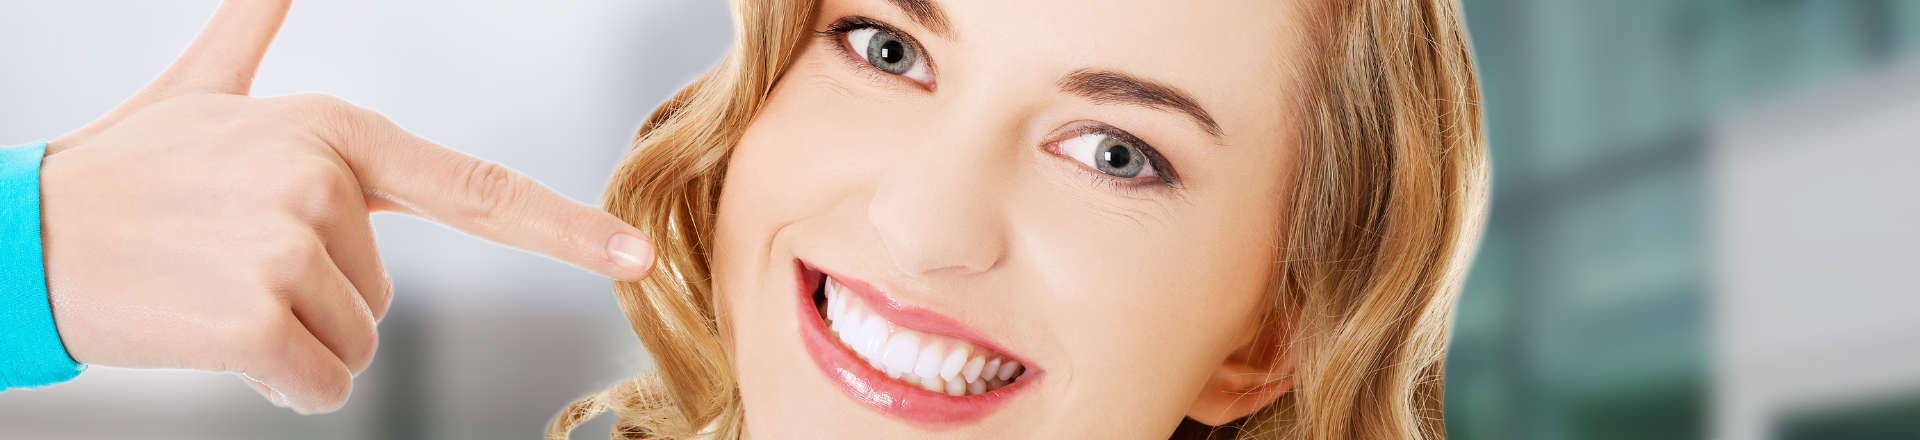 woman pointing at her nice teeth after dental cosmetic treatments